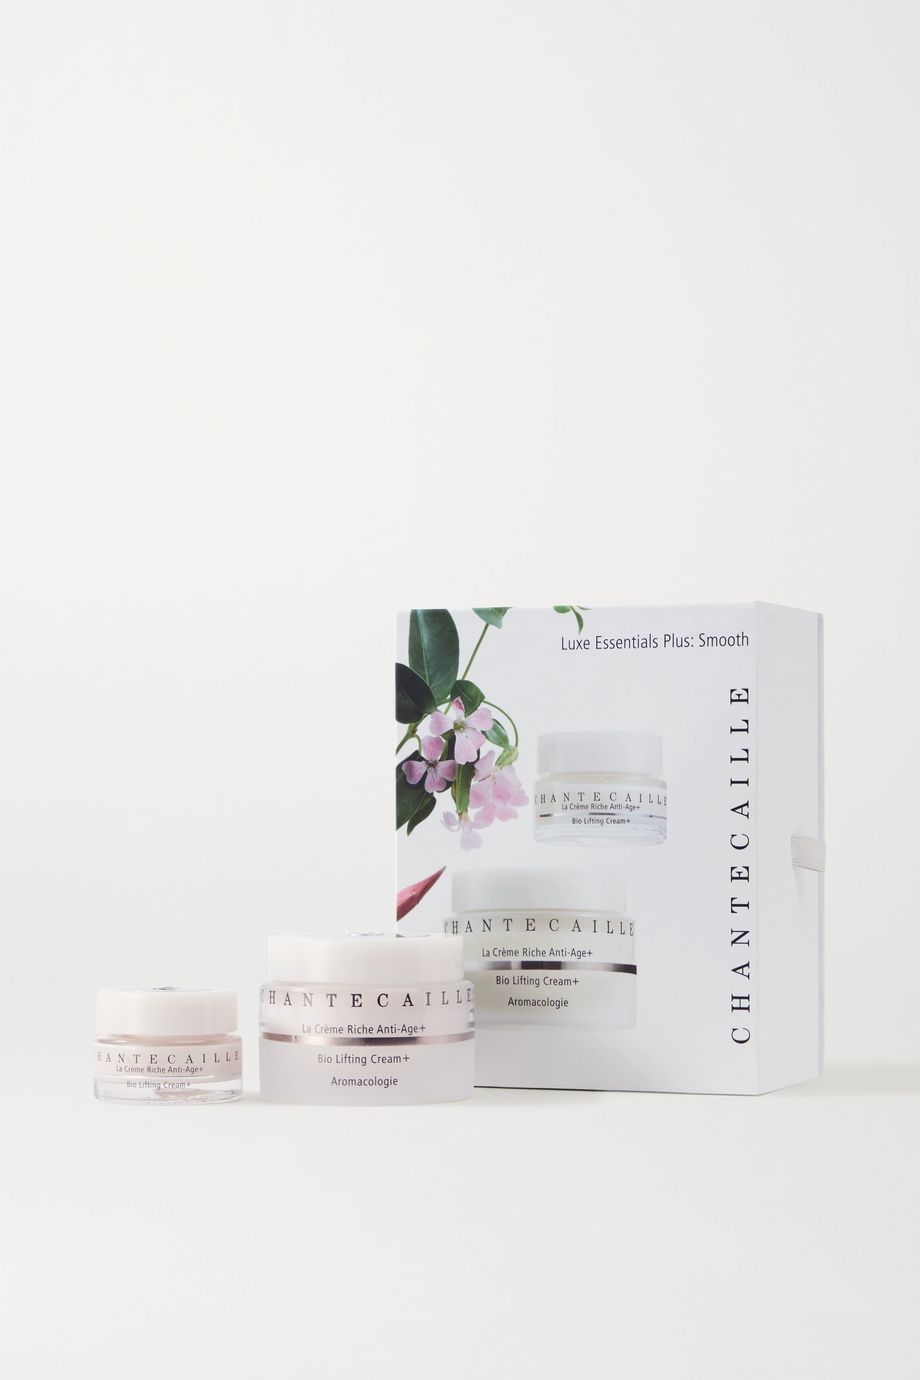 Chantecaille Luxe Essentials Plus: Smooth Set